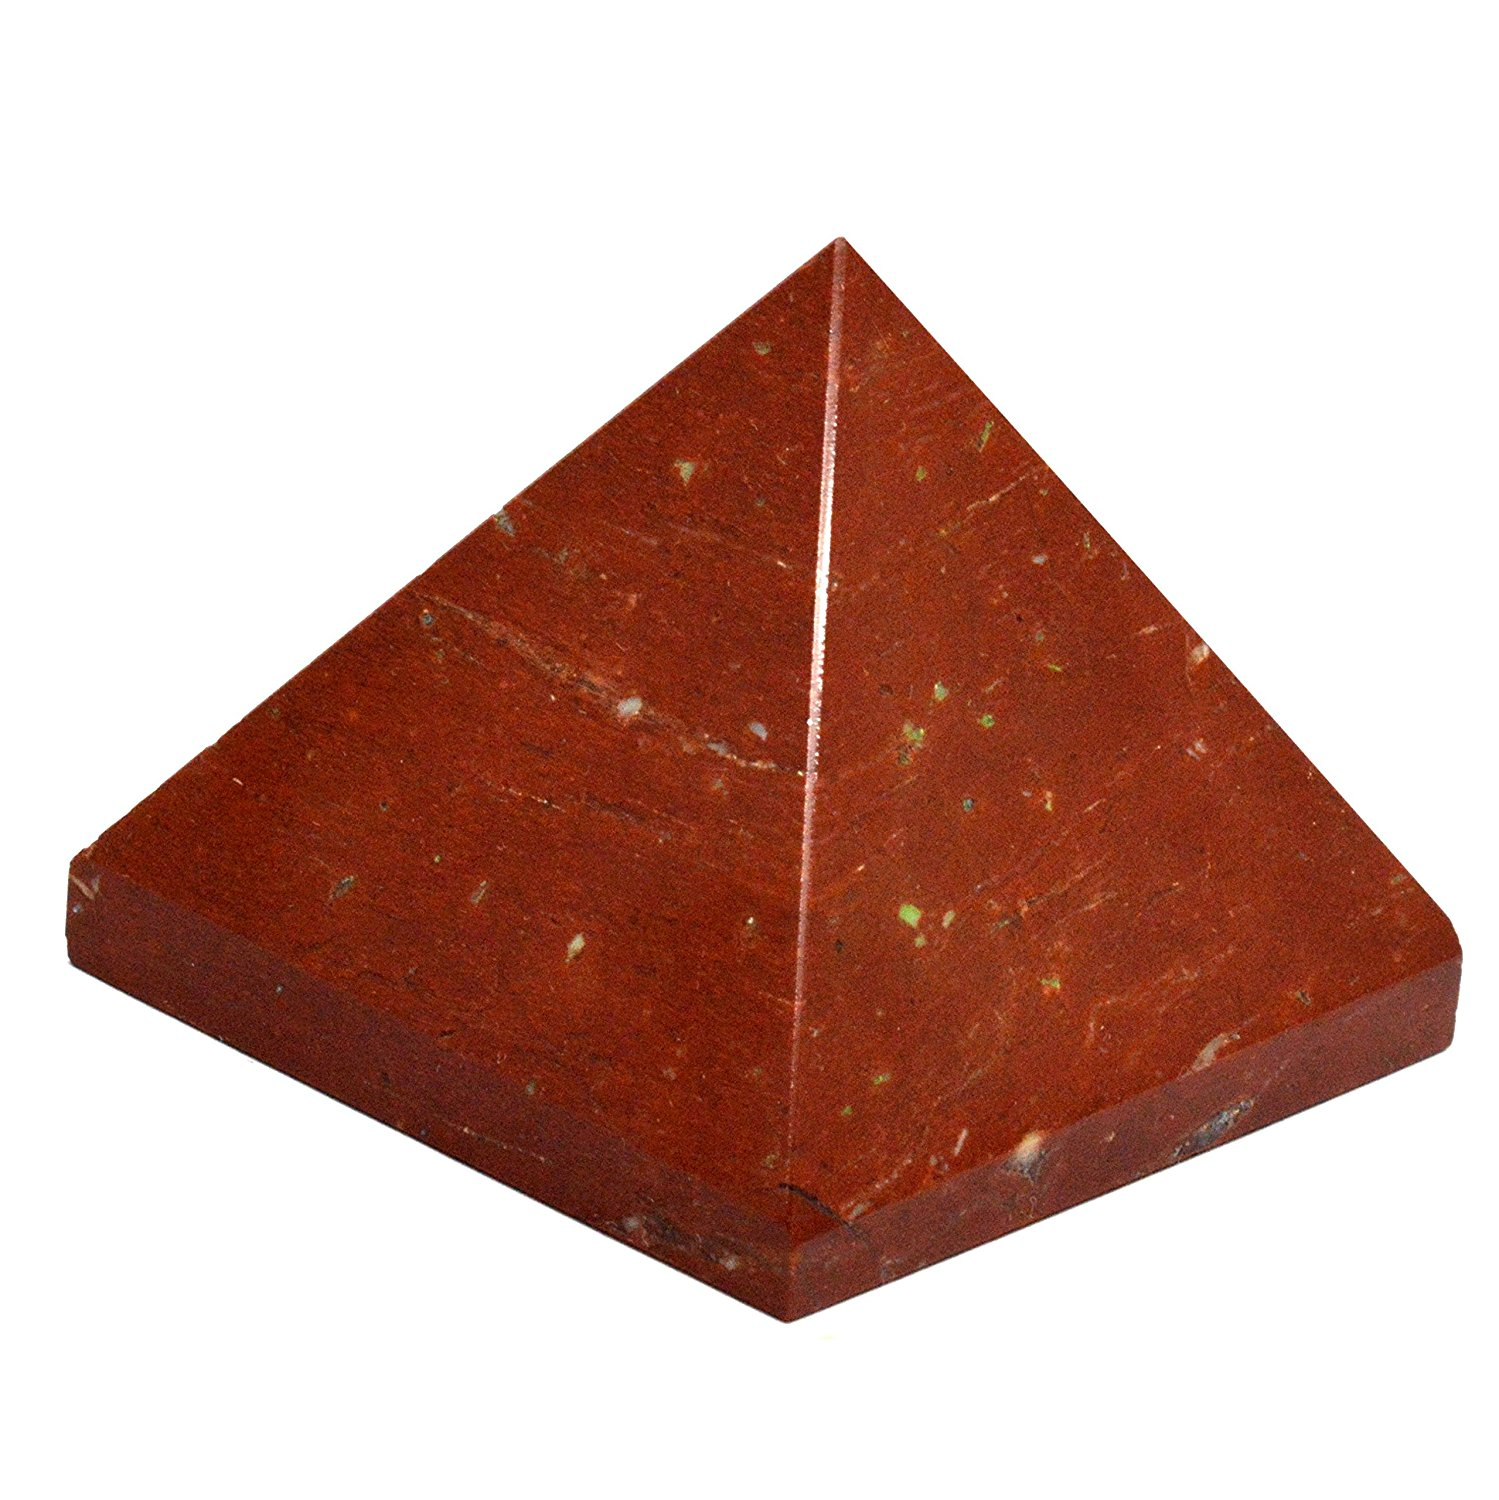 "Healing Crystals India Natural Gemstone Red Aventurine 0.8"" Pyramid Feng Shui Spiritual Reiki Healing Energy Charged Pyramid"